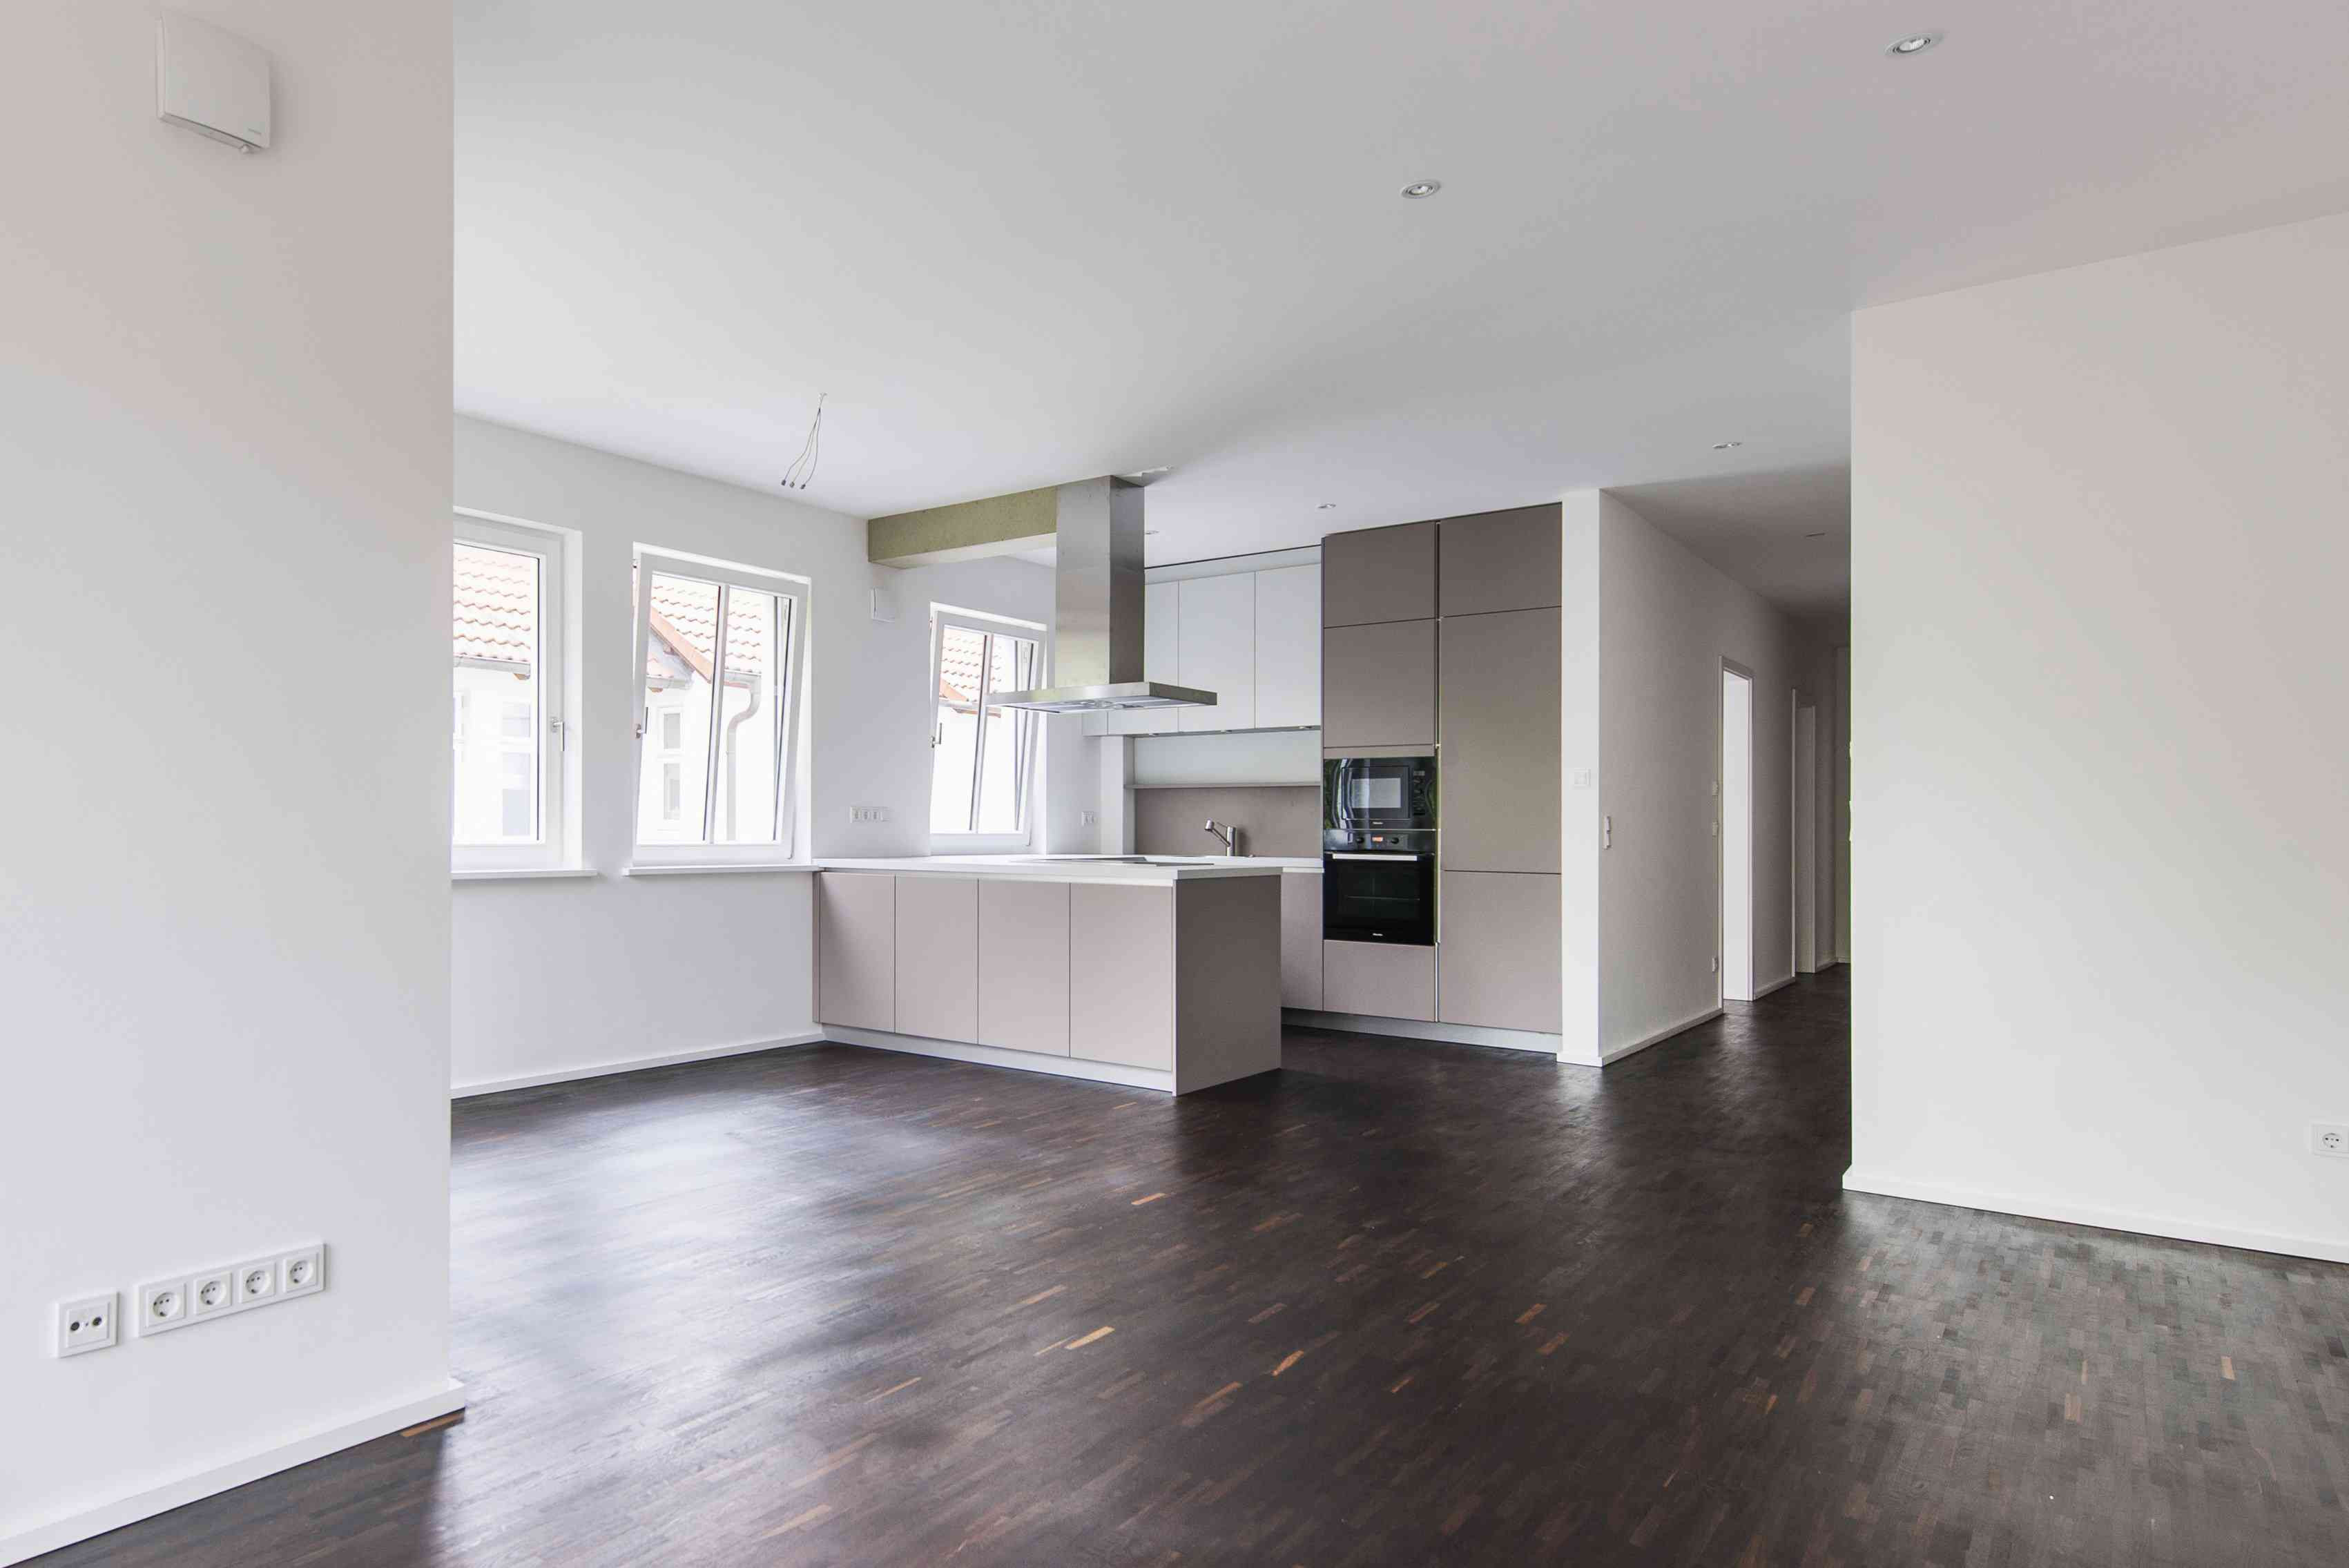 distressed hardwood flooring prices of gorgeous kitchens with wooden flooring throughout very dark wood floor in kitchen 540797801 arnt haug look foto 56a4a1683df78cf77283536f